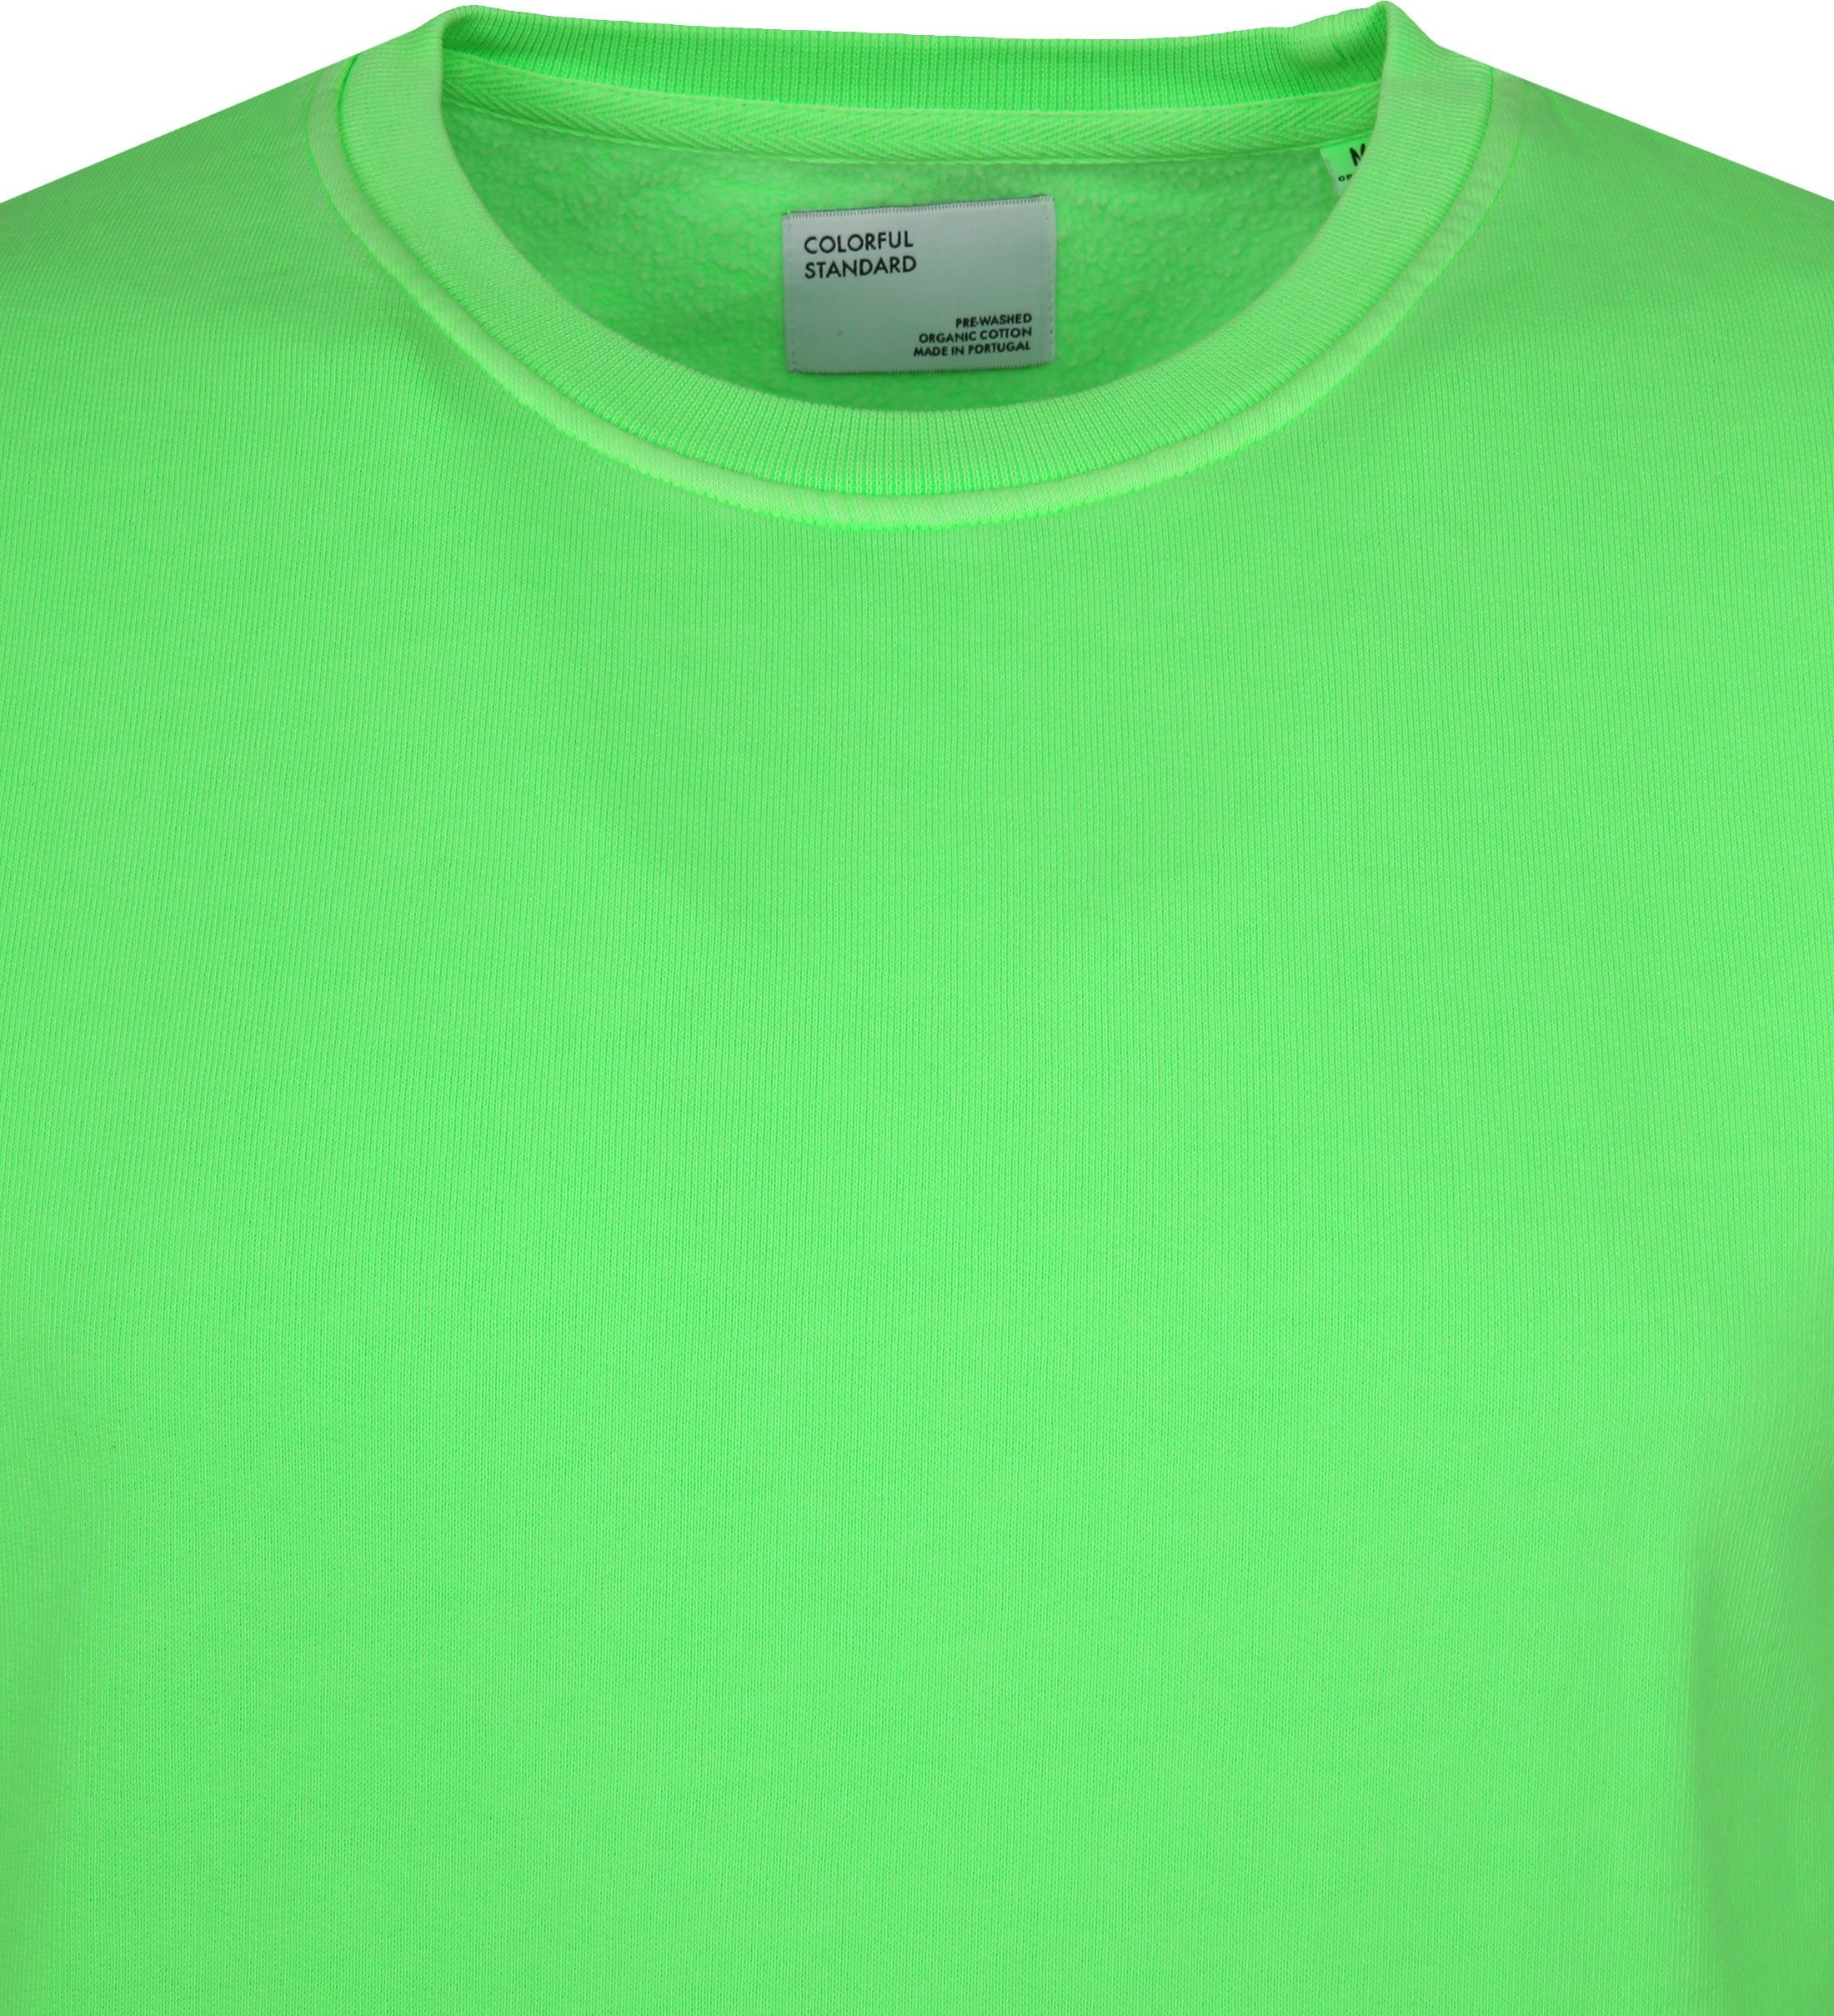 Colorful Standard Sweater Neon Groen foto 1